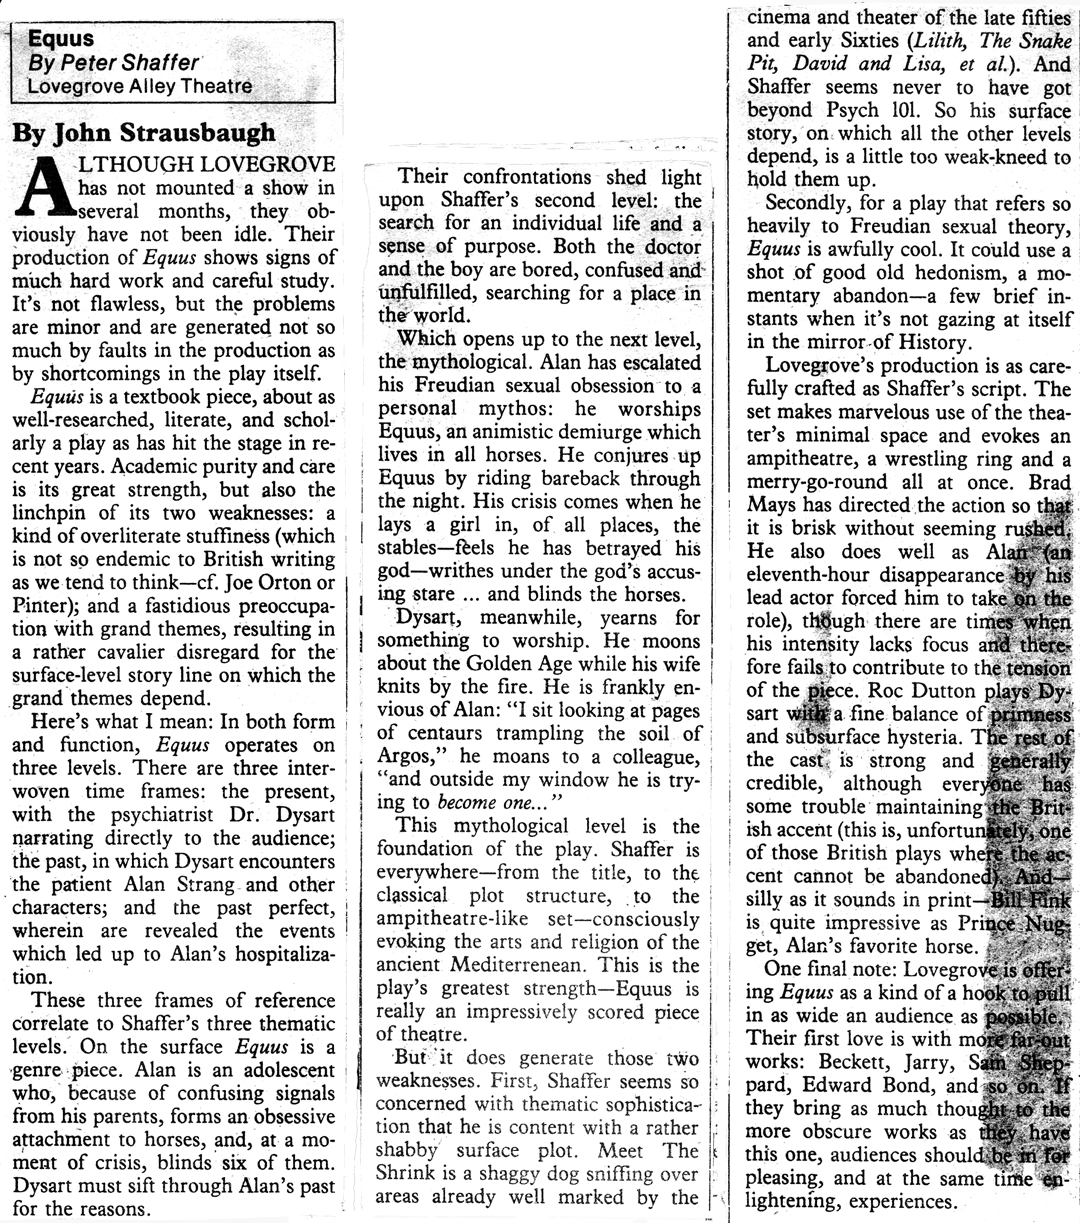 equus play the photo above is from the baltimore city paper it is a review written by strausbaugh john 10 1979 reviewing the performance of equus on theaters